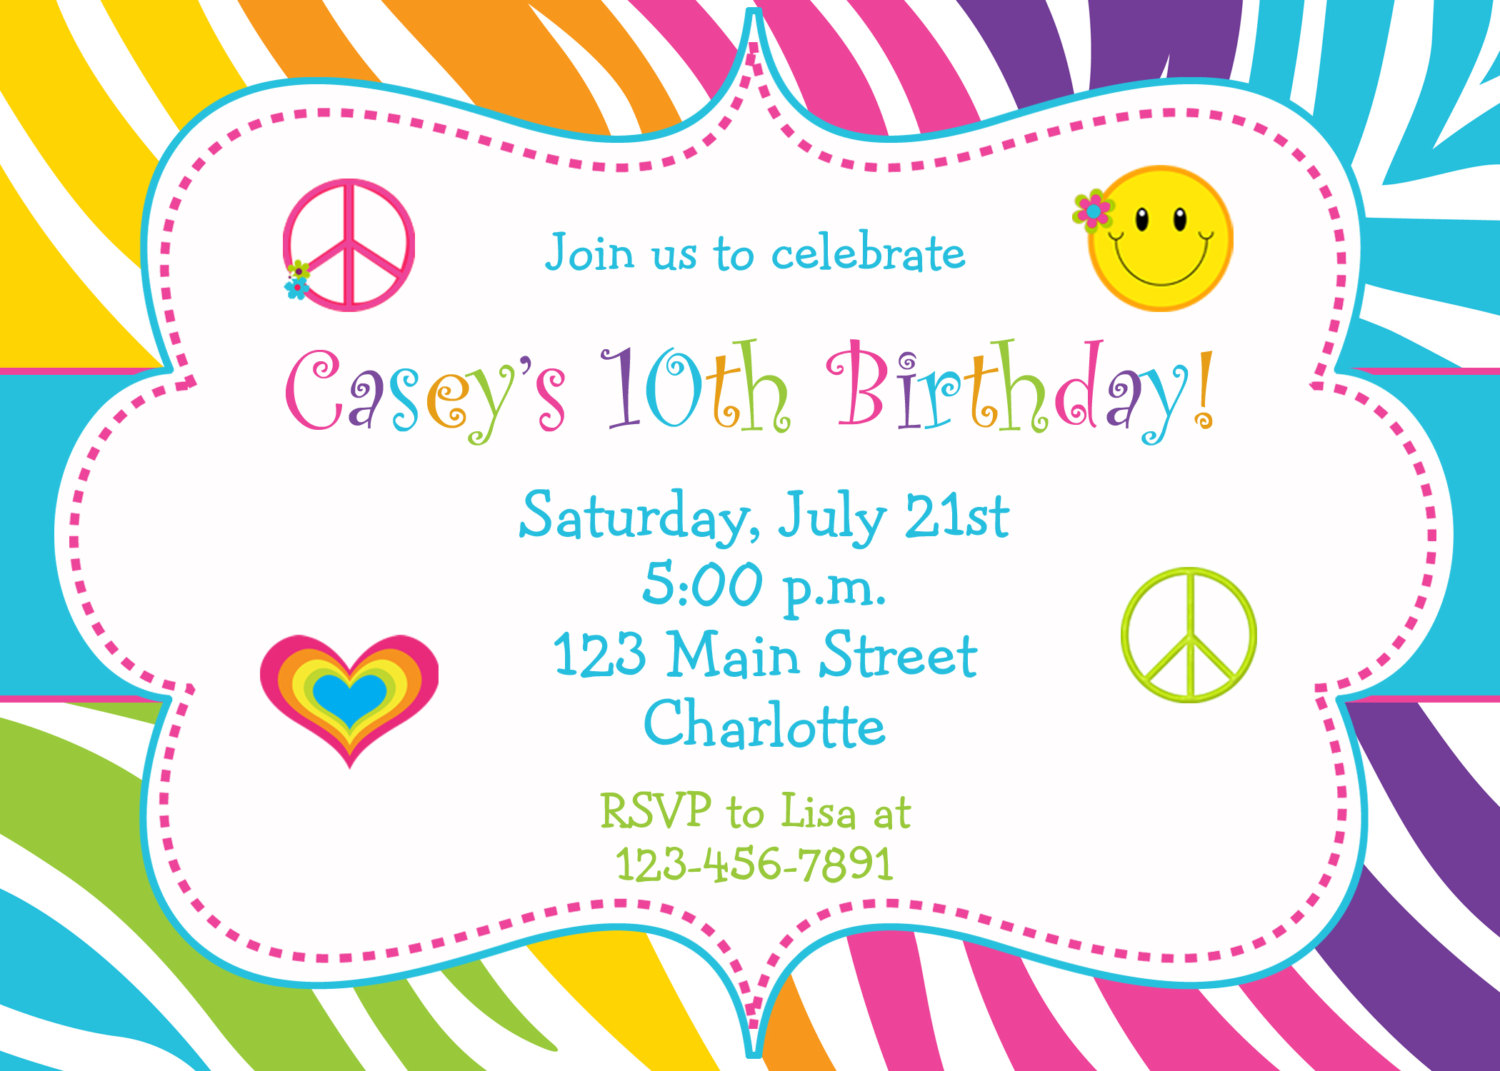 10th birthday invitation templates free ; birthday-party-invitations-to-make-new-style-of-pretty-Party-invitation-card-qwe10